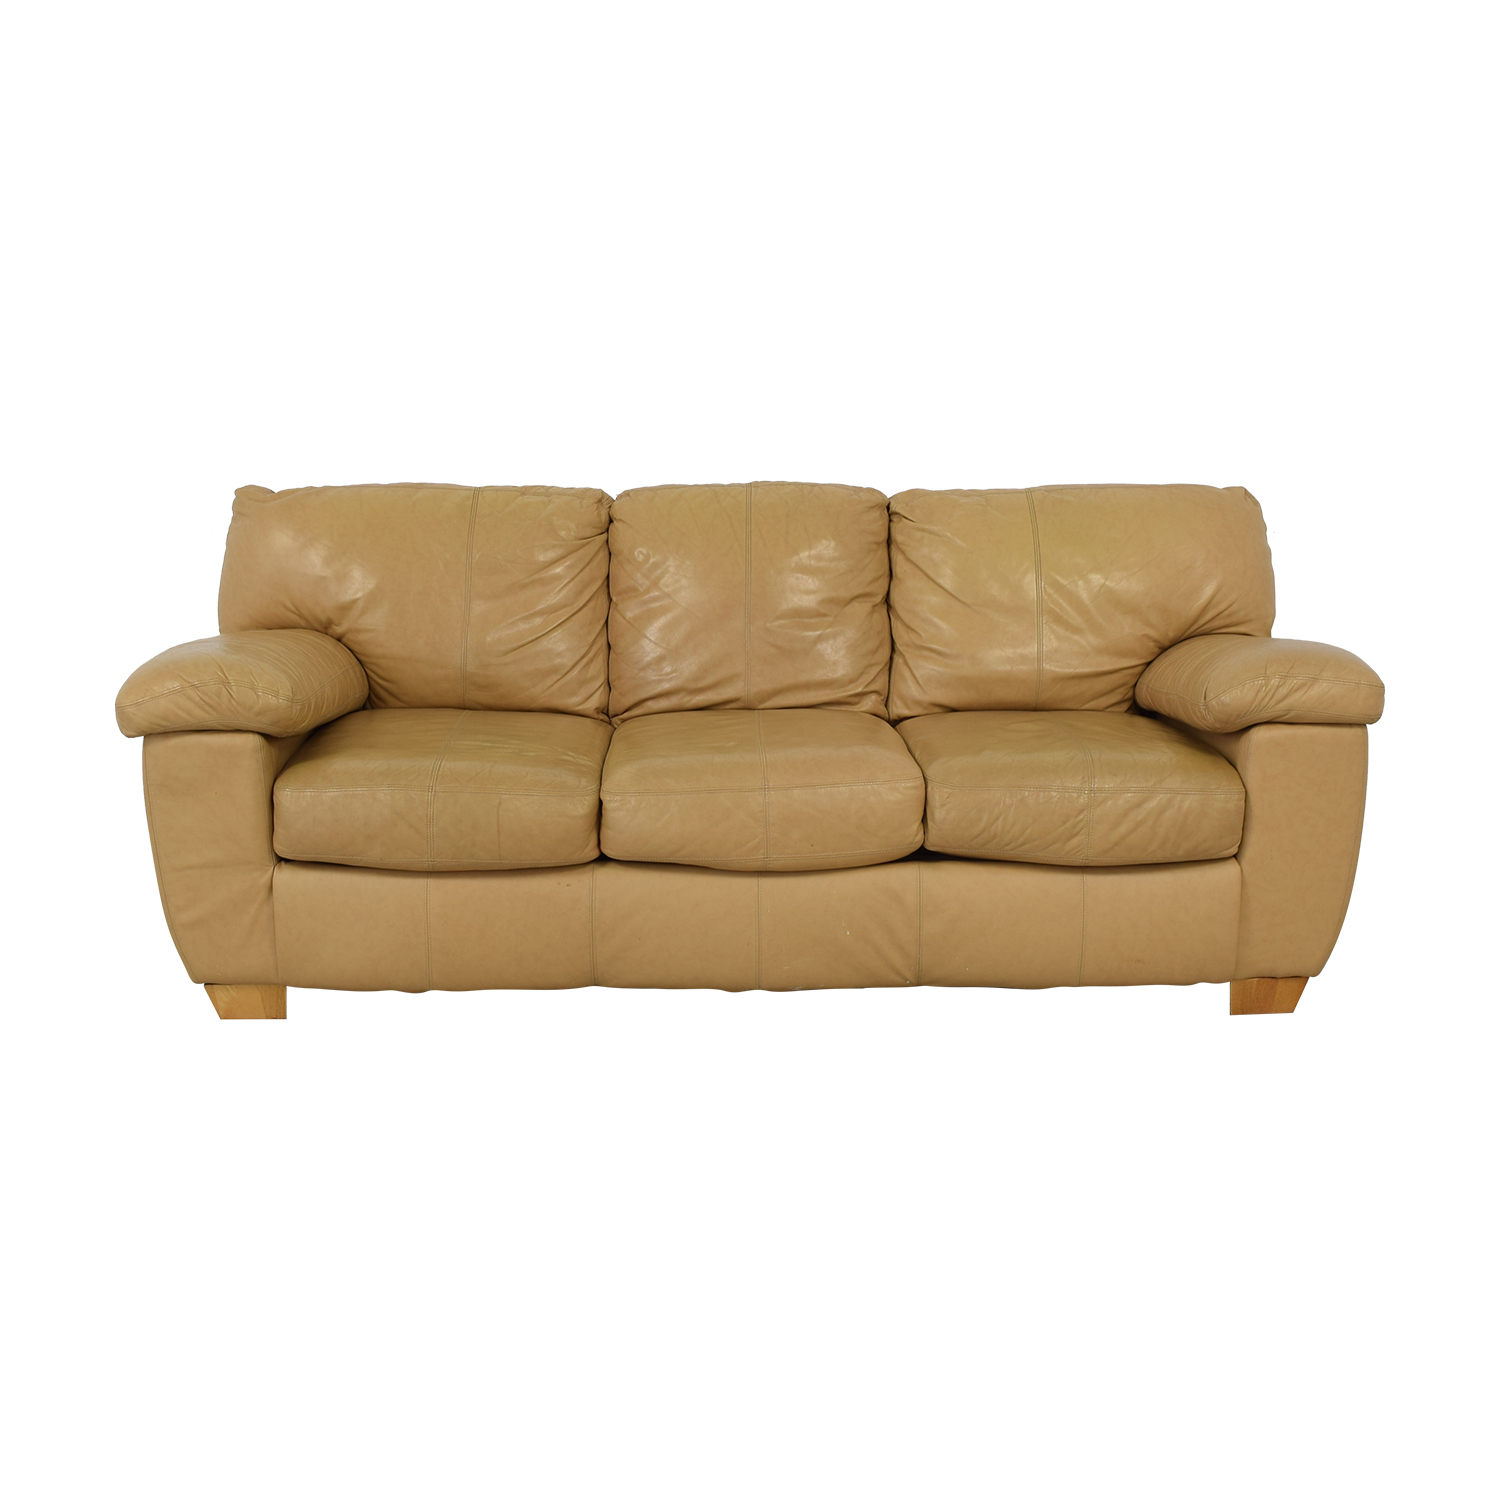 shop Ashley Furniture Three Cushion Sofa Ashley Furniture Classic Sofas